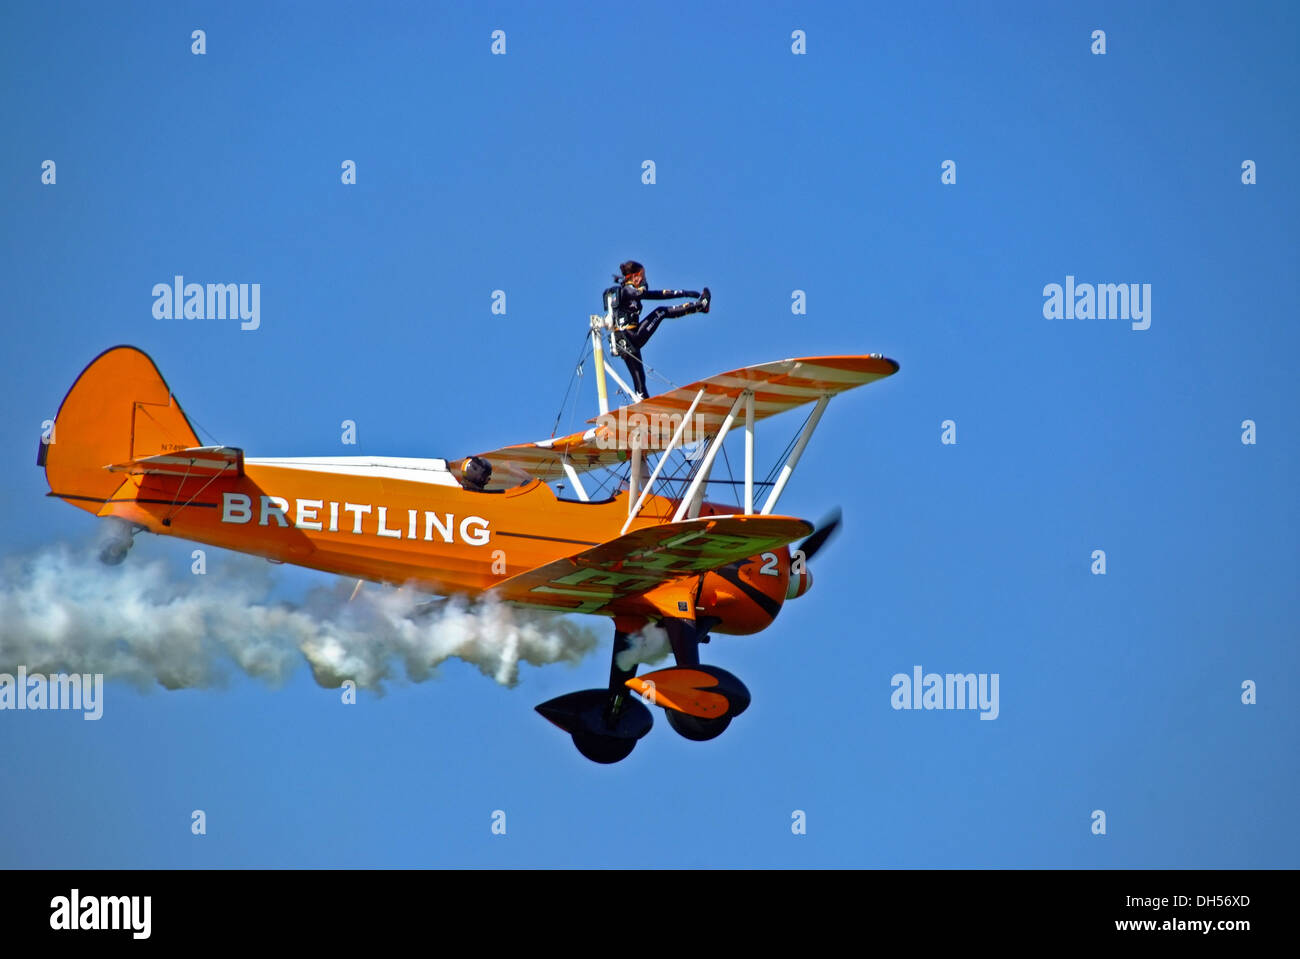 Breitling wing walkers Aerobatics Display Team with clear blue sky at piston and props show sywell Aerodrome Northamptonshire - Stock Image